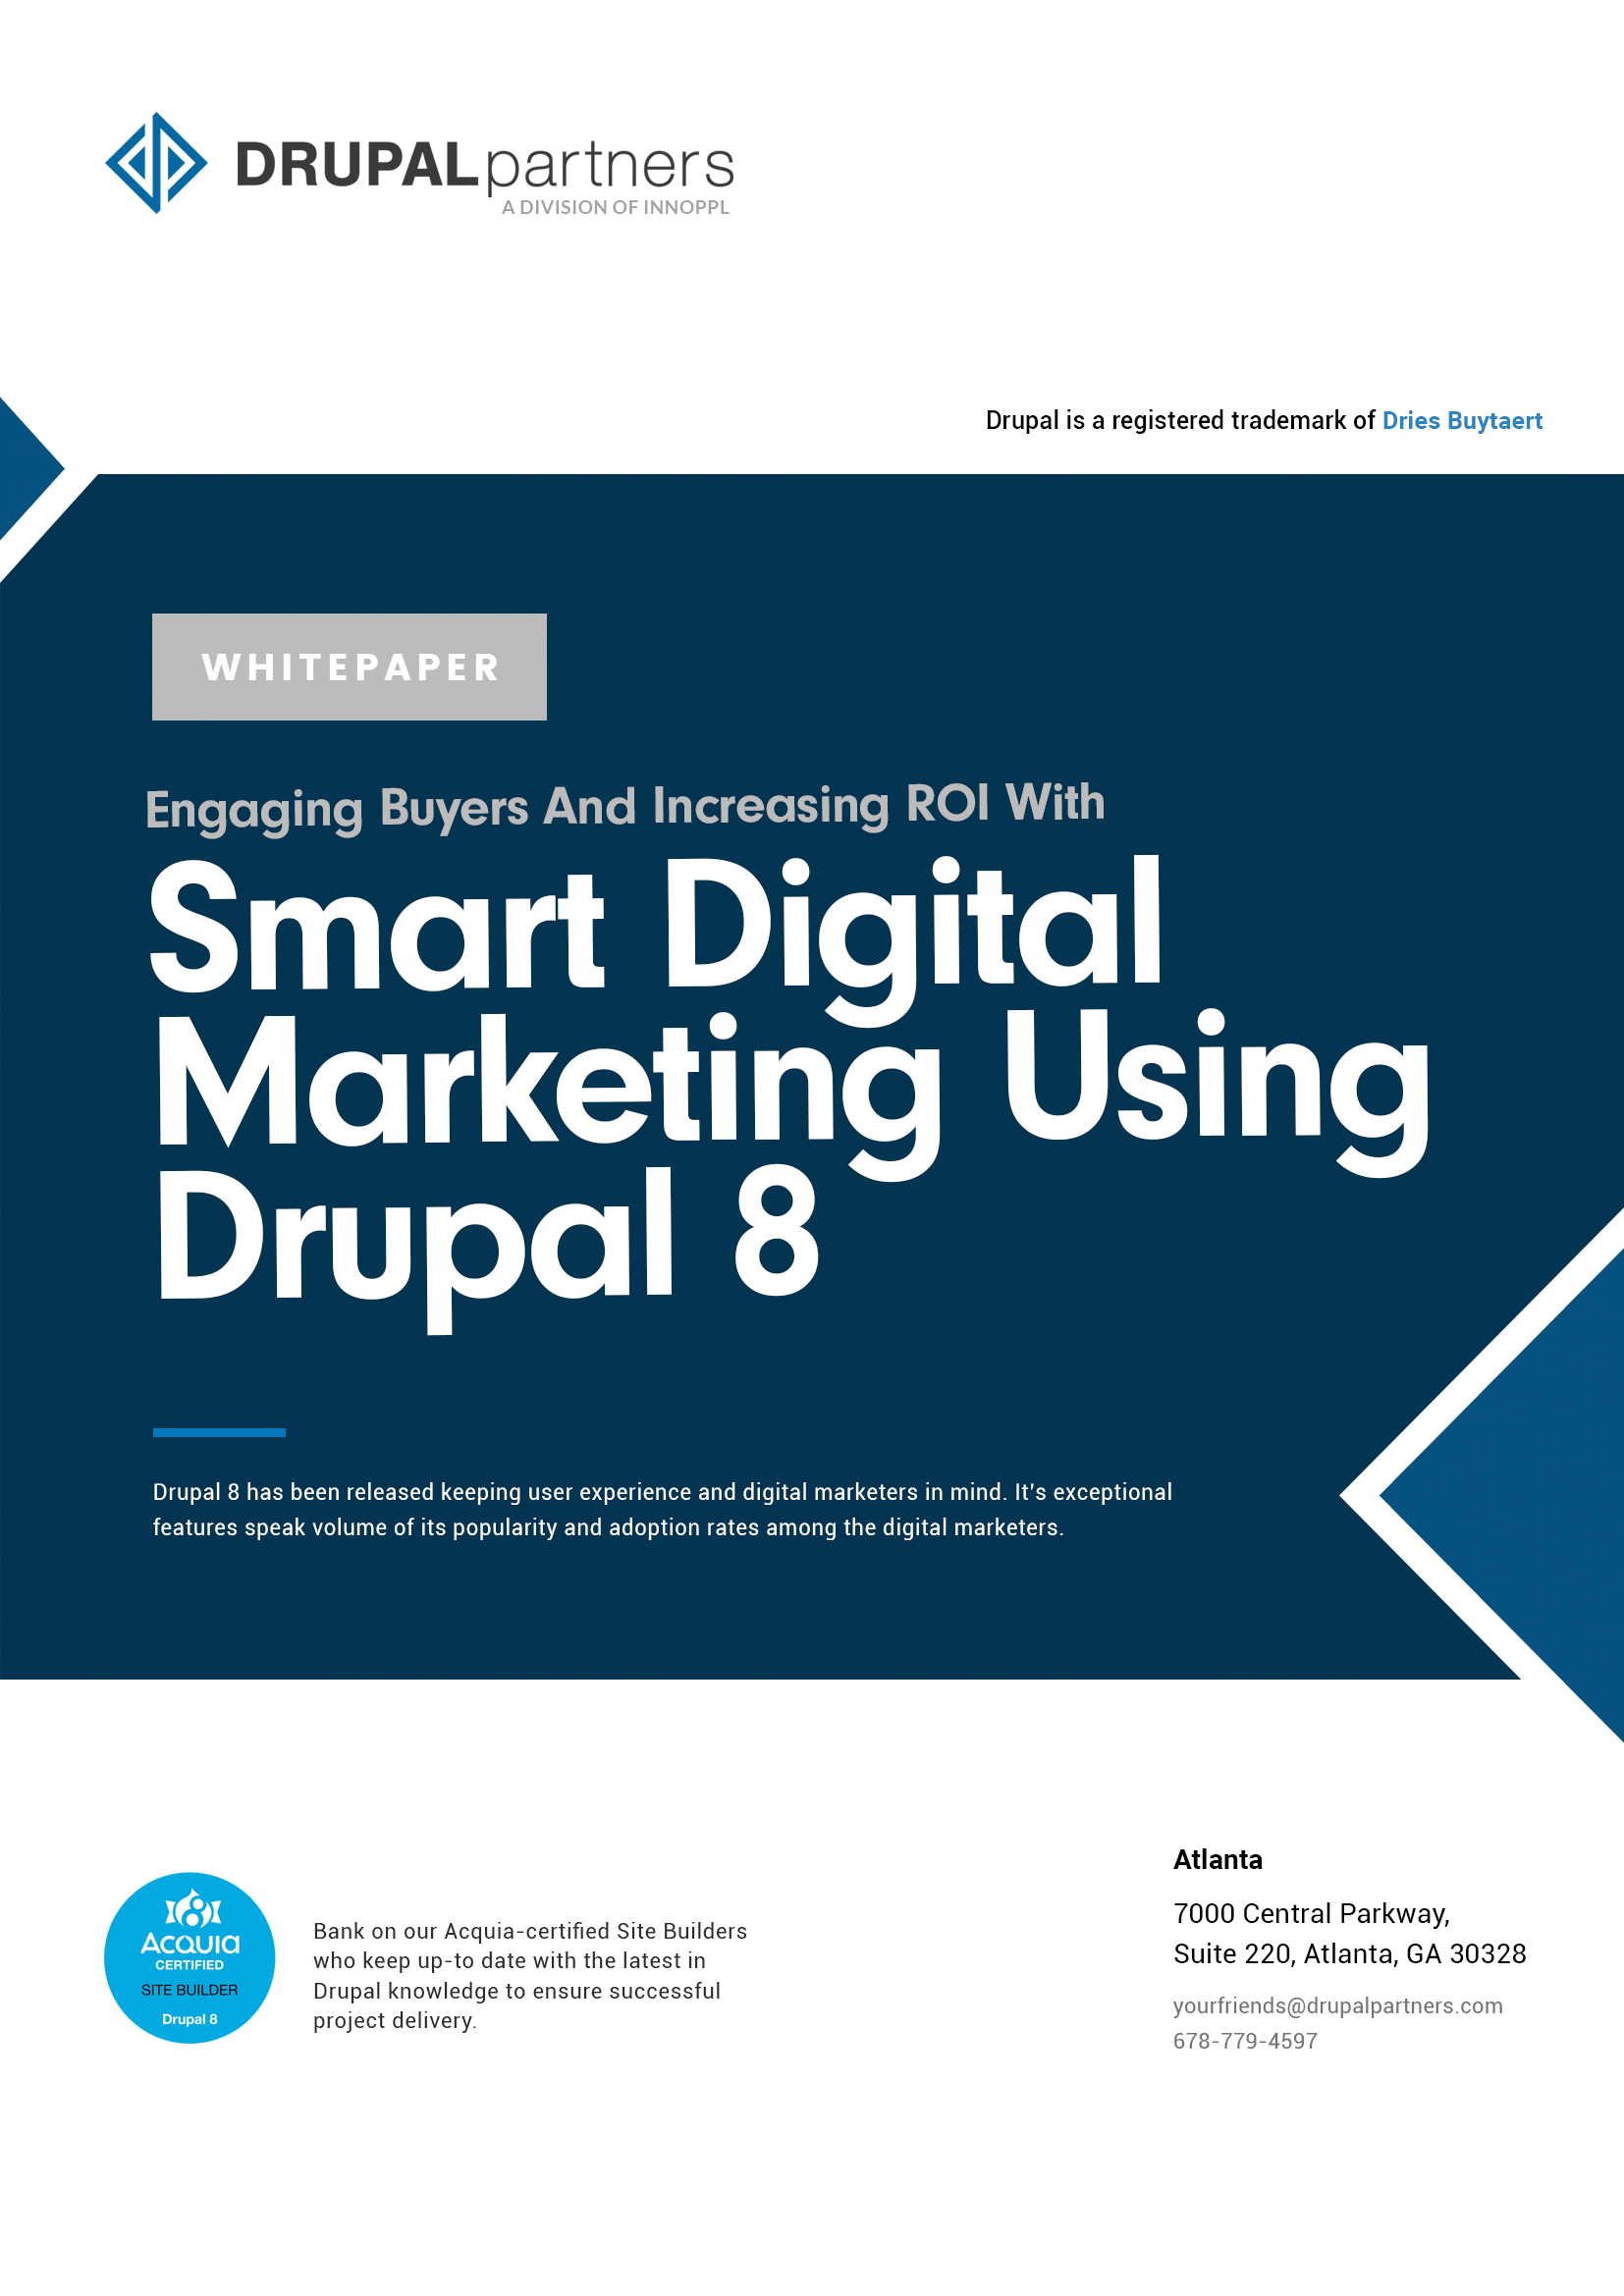 ROI with Smart Digital Marketing Using Drupal 8